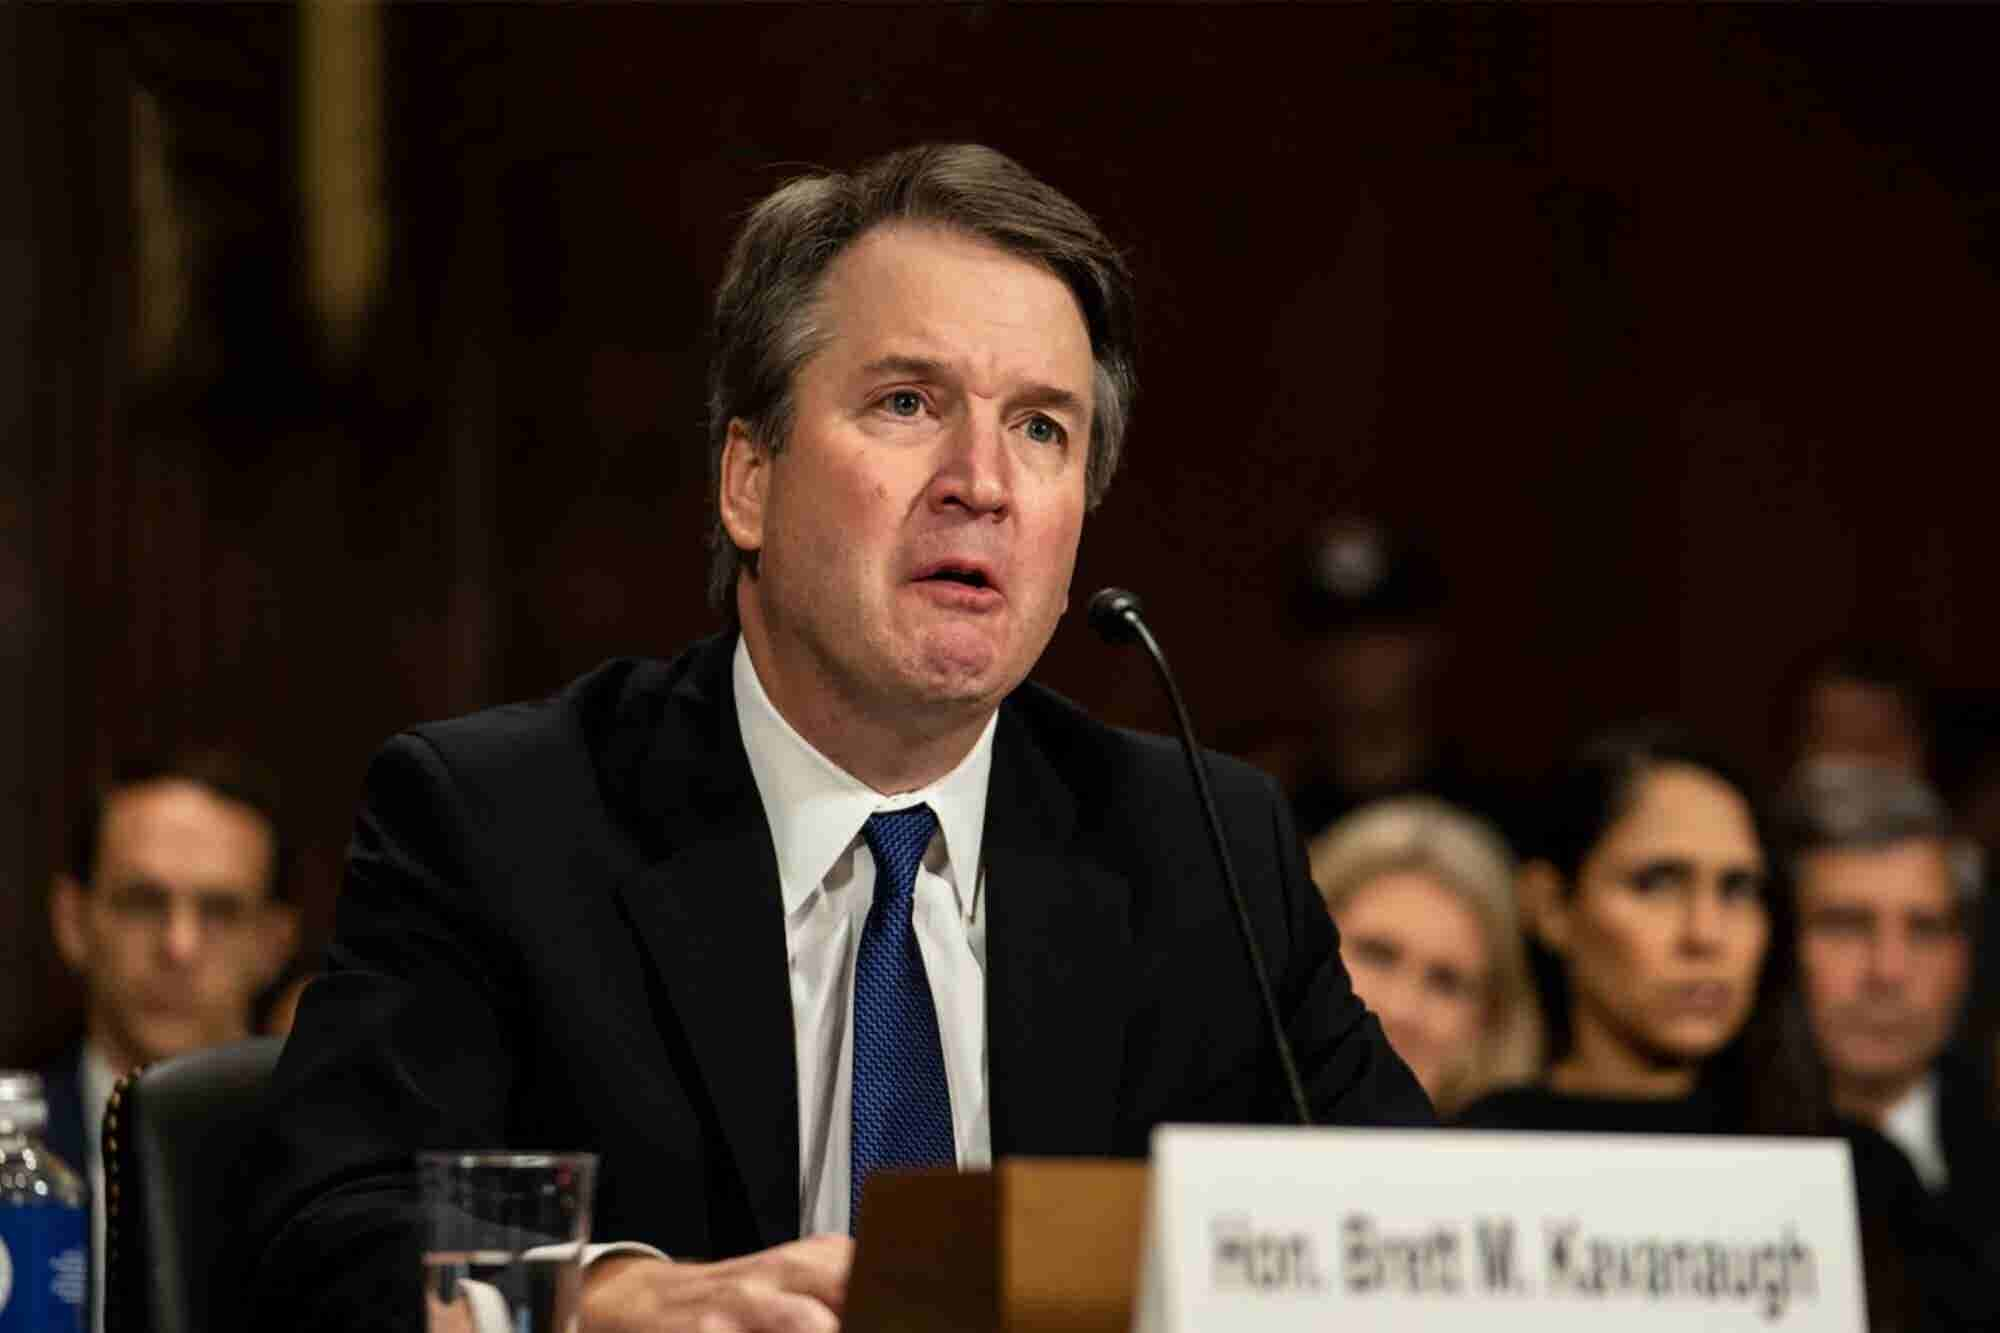 Senate Committee Sets High-Stakes Vote to Advance Kavanaugh After Day of Drama